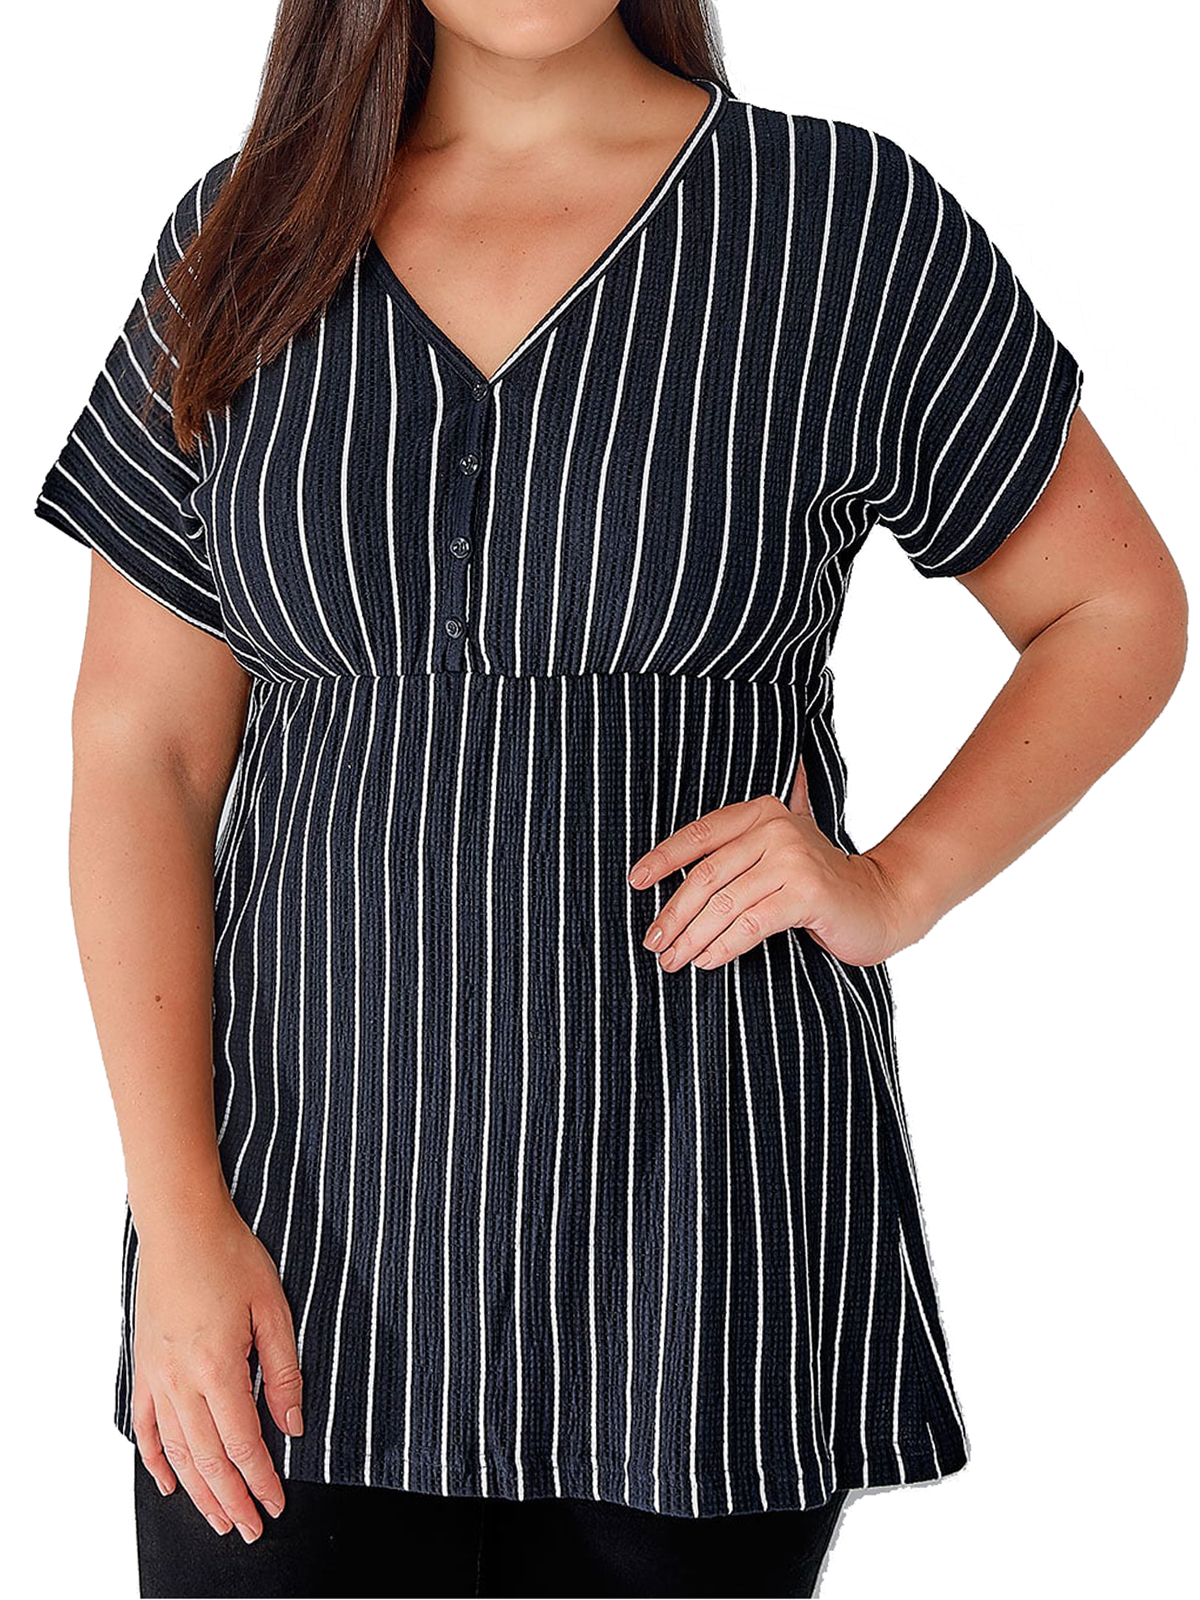 Ivans NAVY V-Neck Striped Tunic Top - Plus Size 16 to 34/36